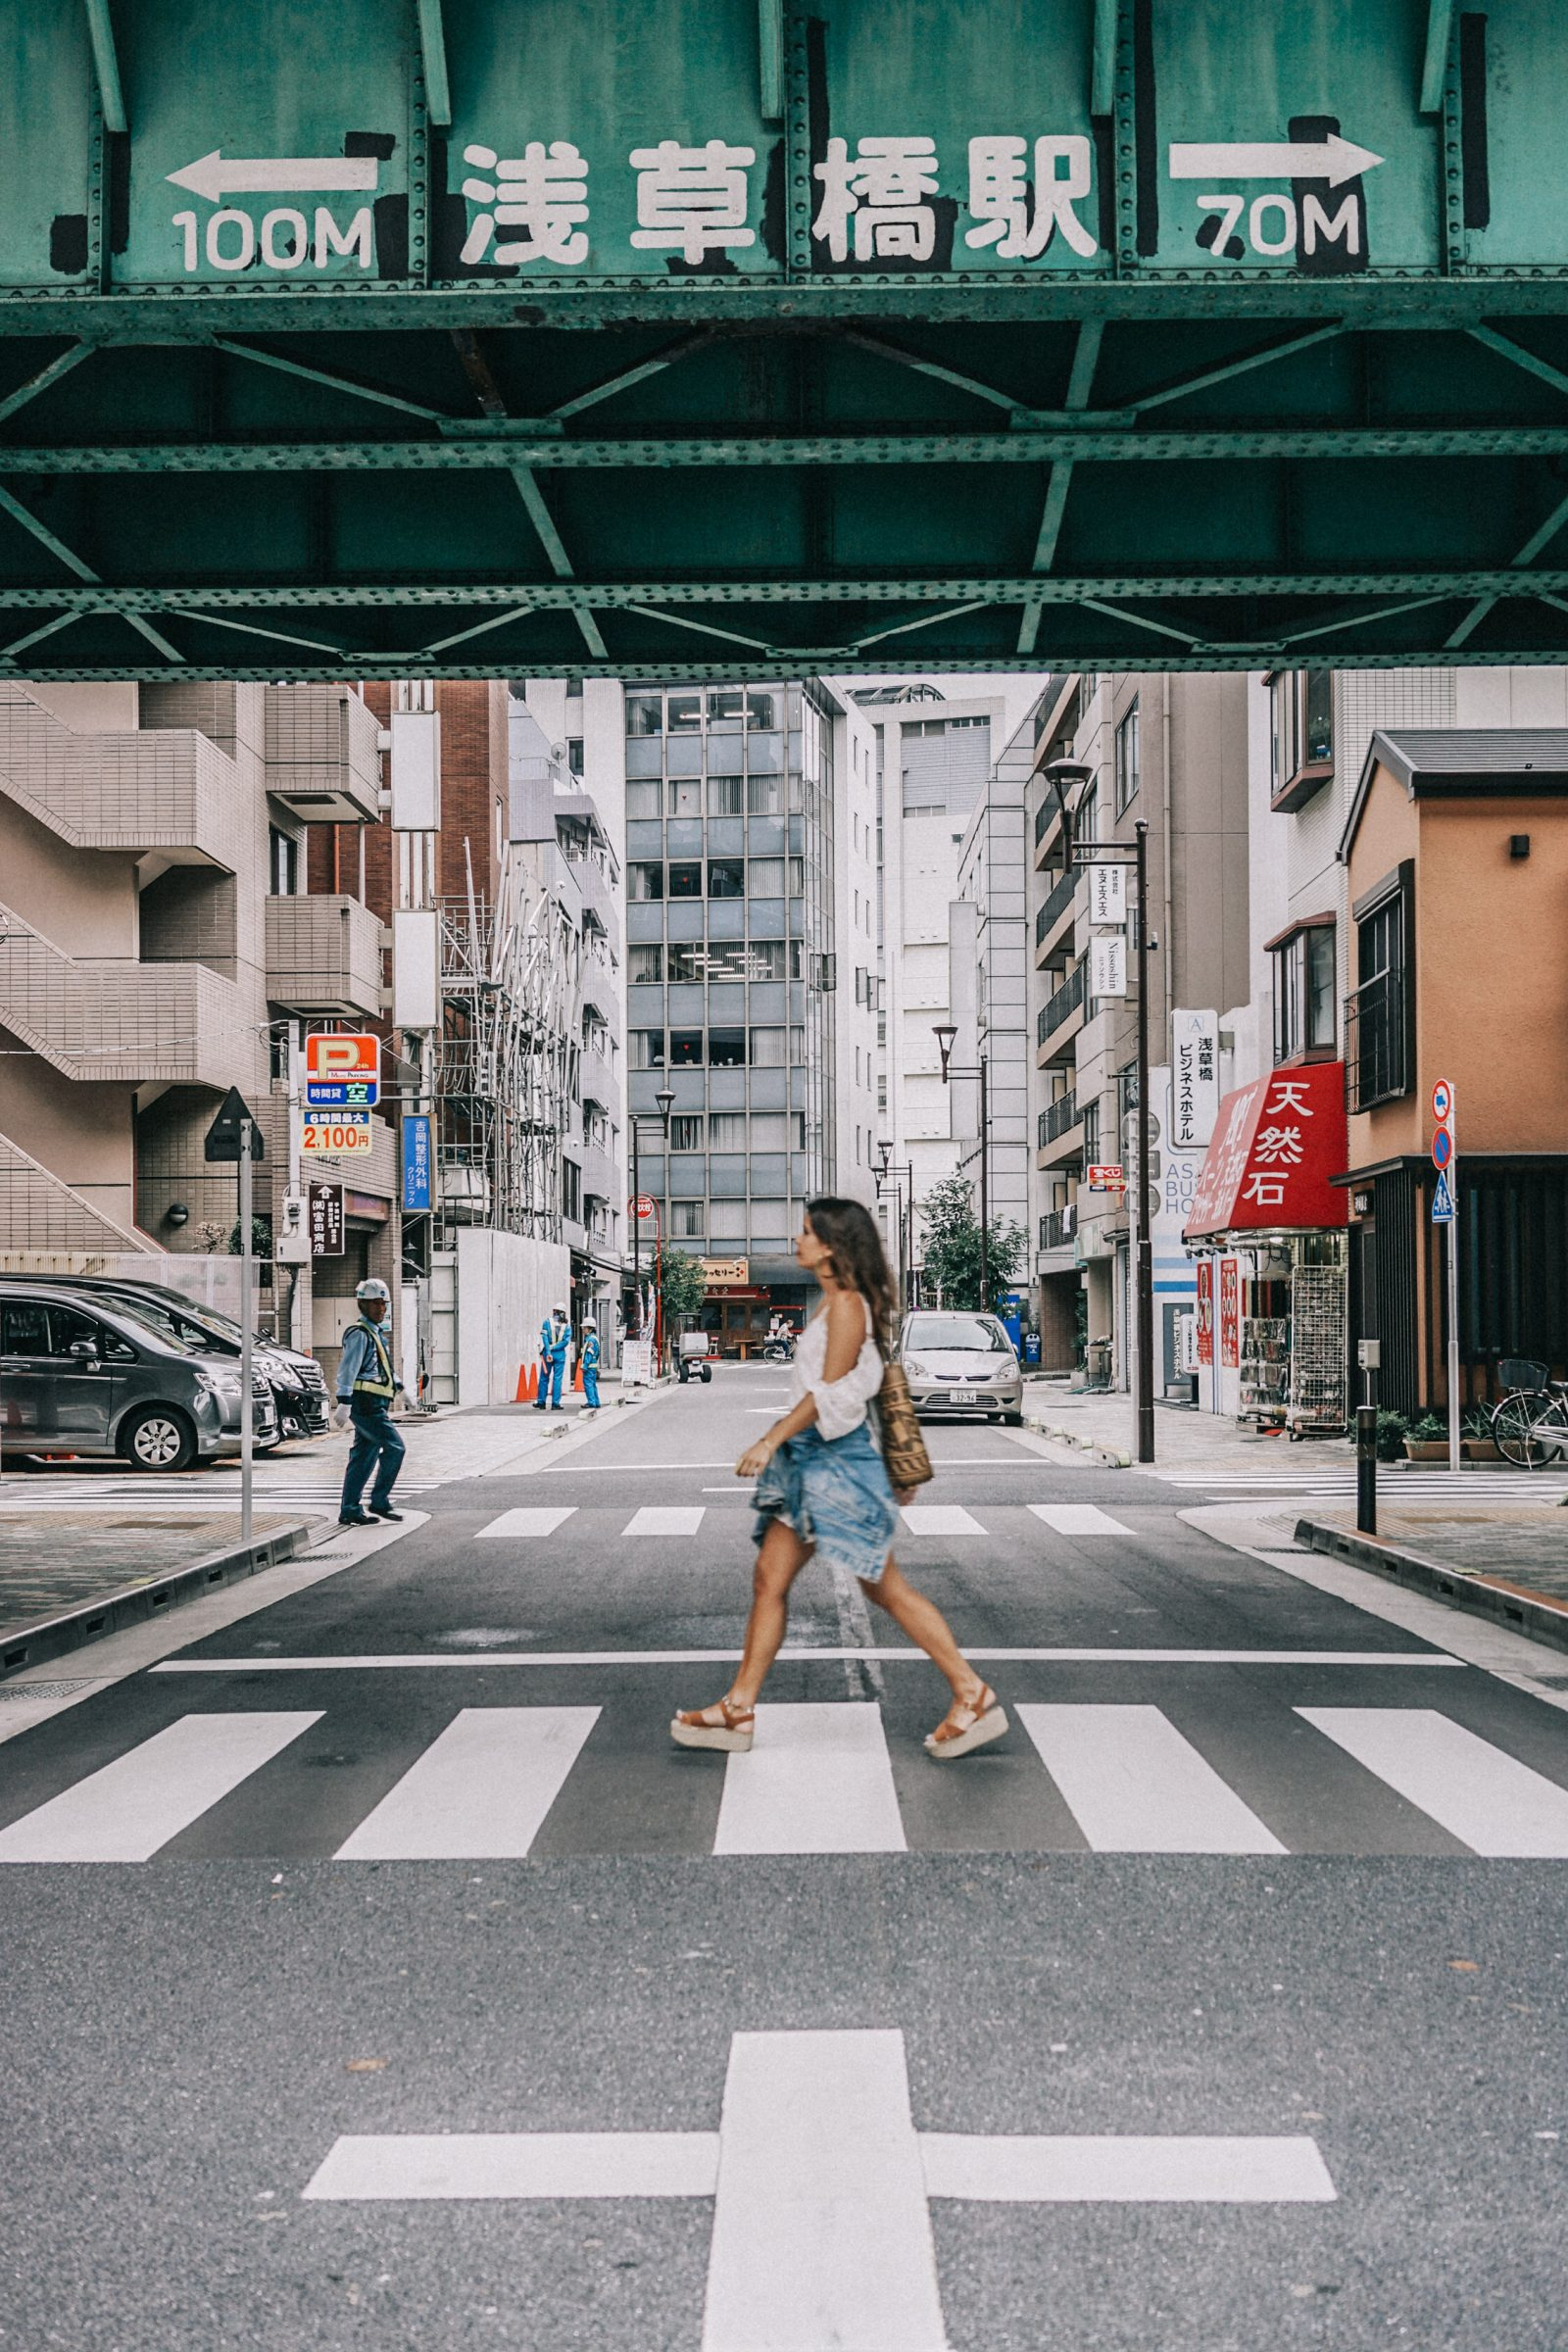 tokyo_travel_guide-outfit-collage_vintage-street_style-lovers_and_friends_jumpsuit-white_outfit-espadrilles-backpack-levis_denim_jacket-akihabara-108